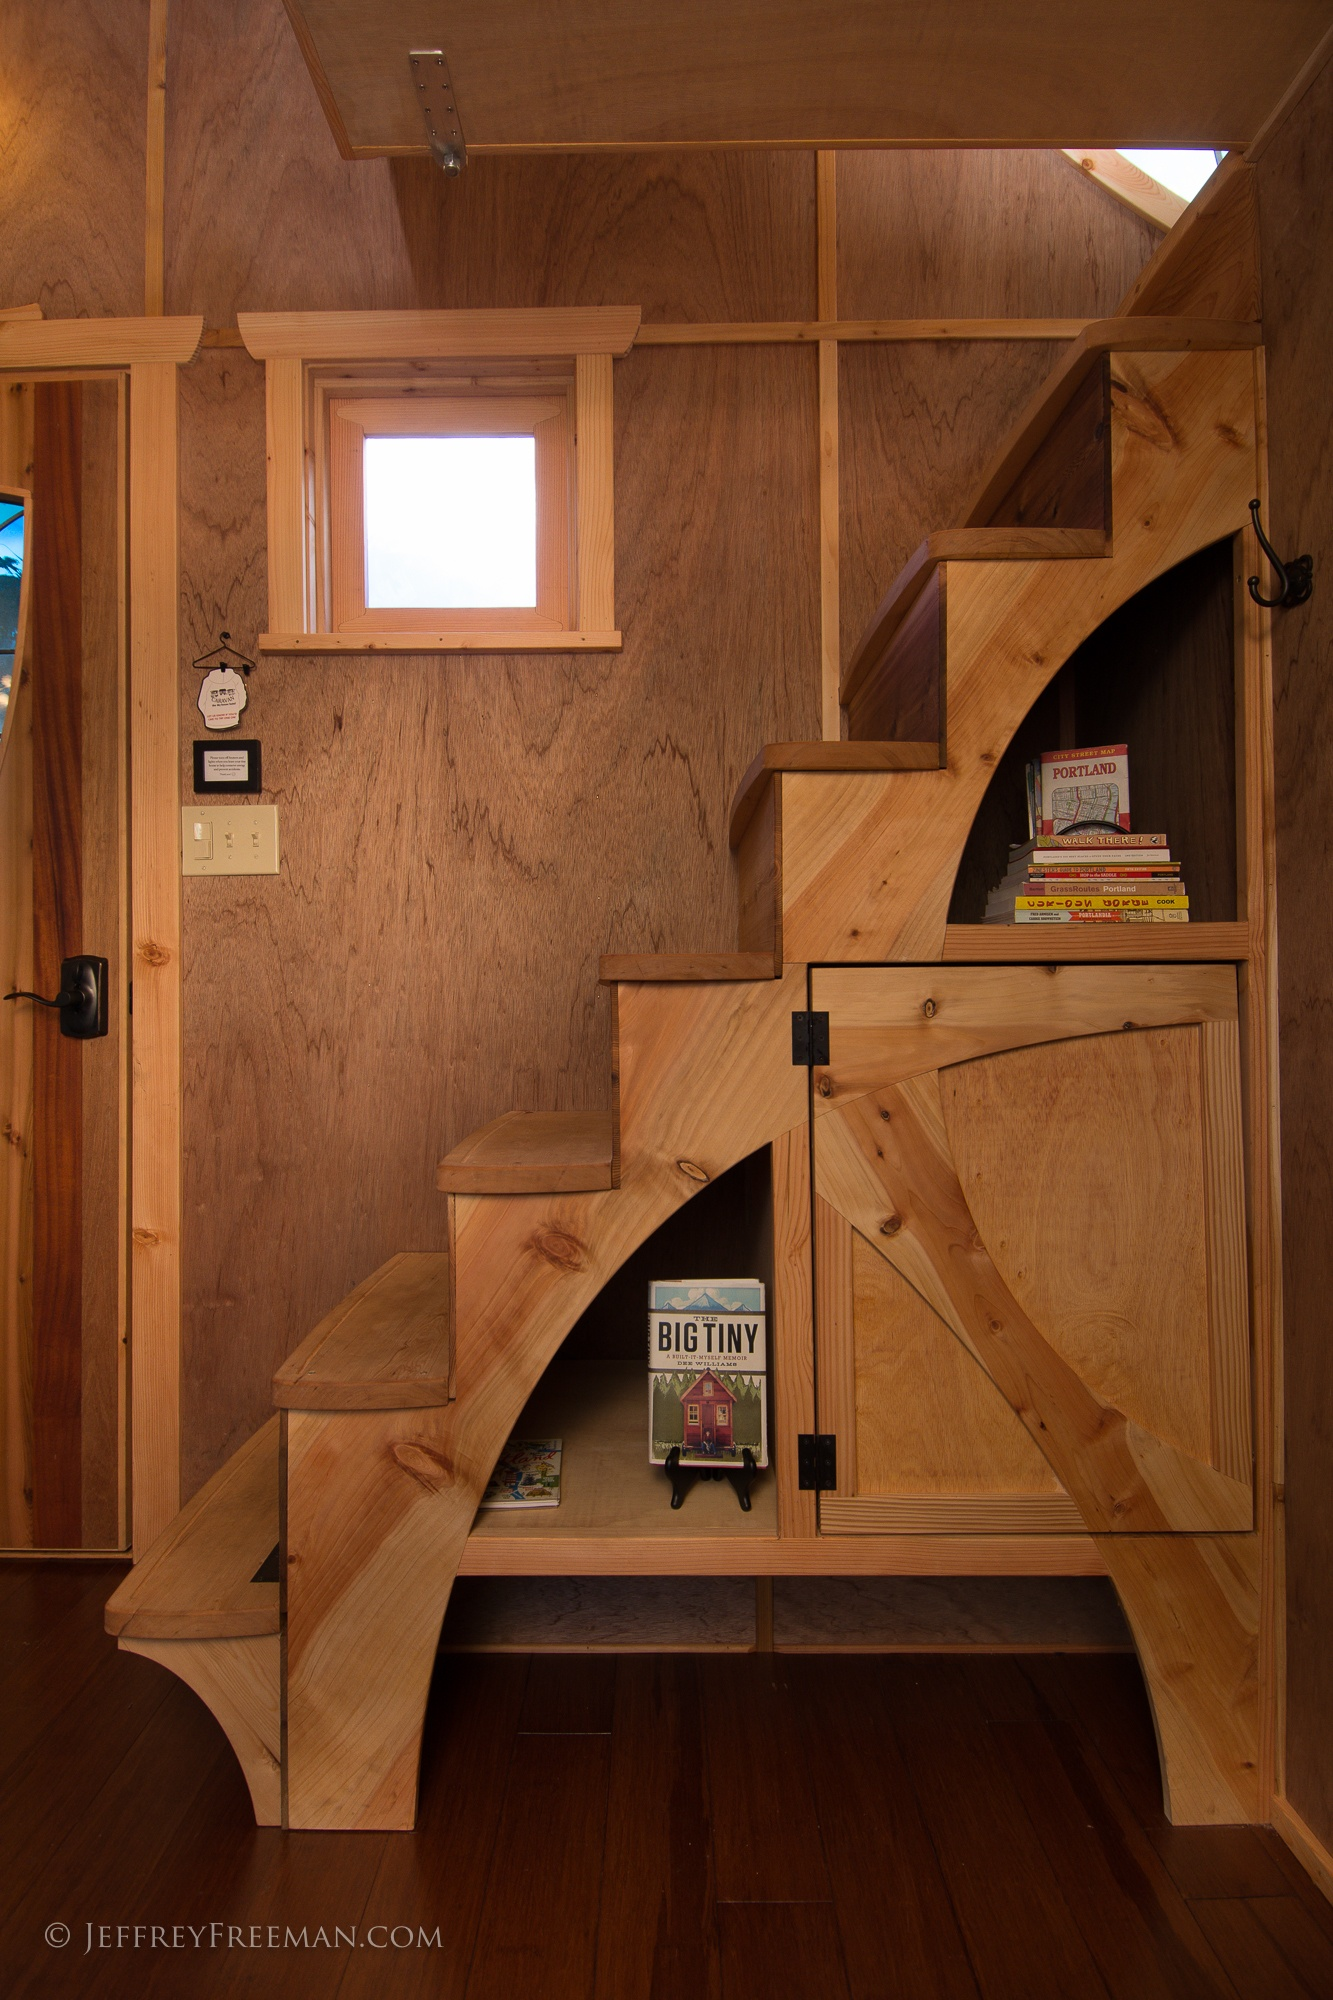 Whimsical Stairs - Pacifica by Zyl Vardos at the Tiny House Hotel